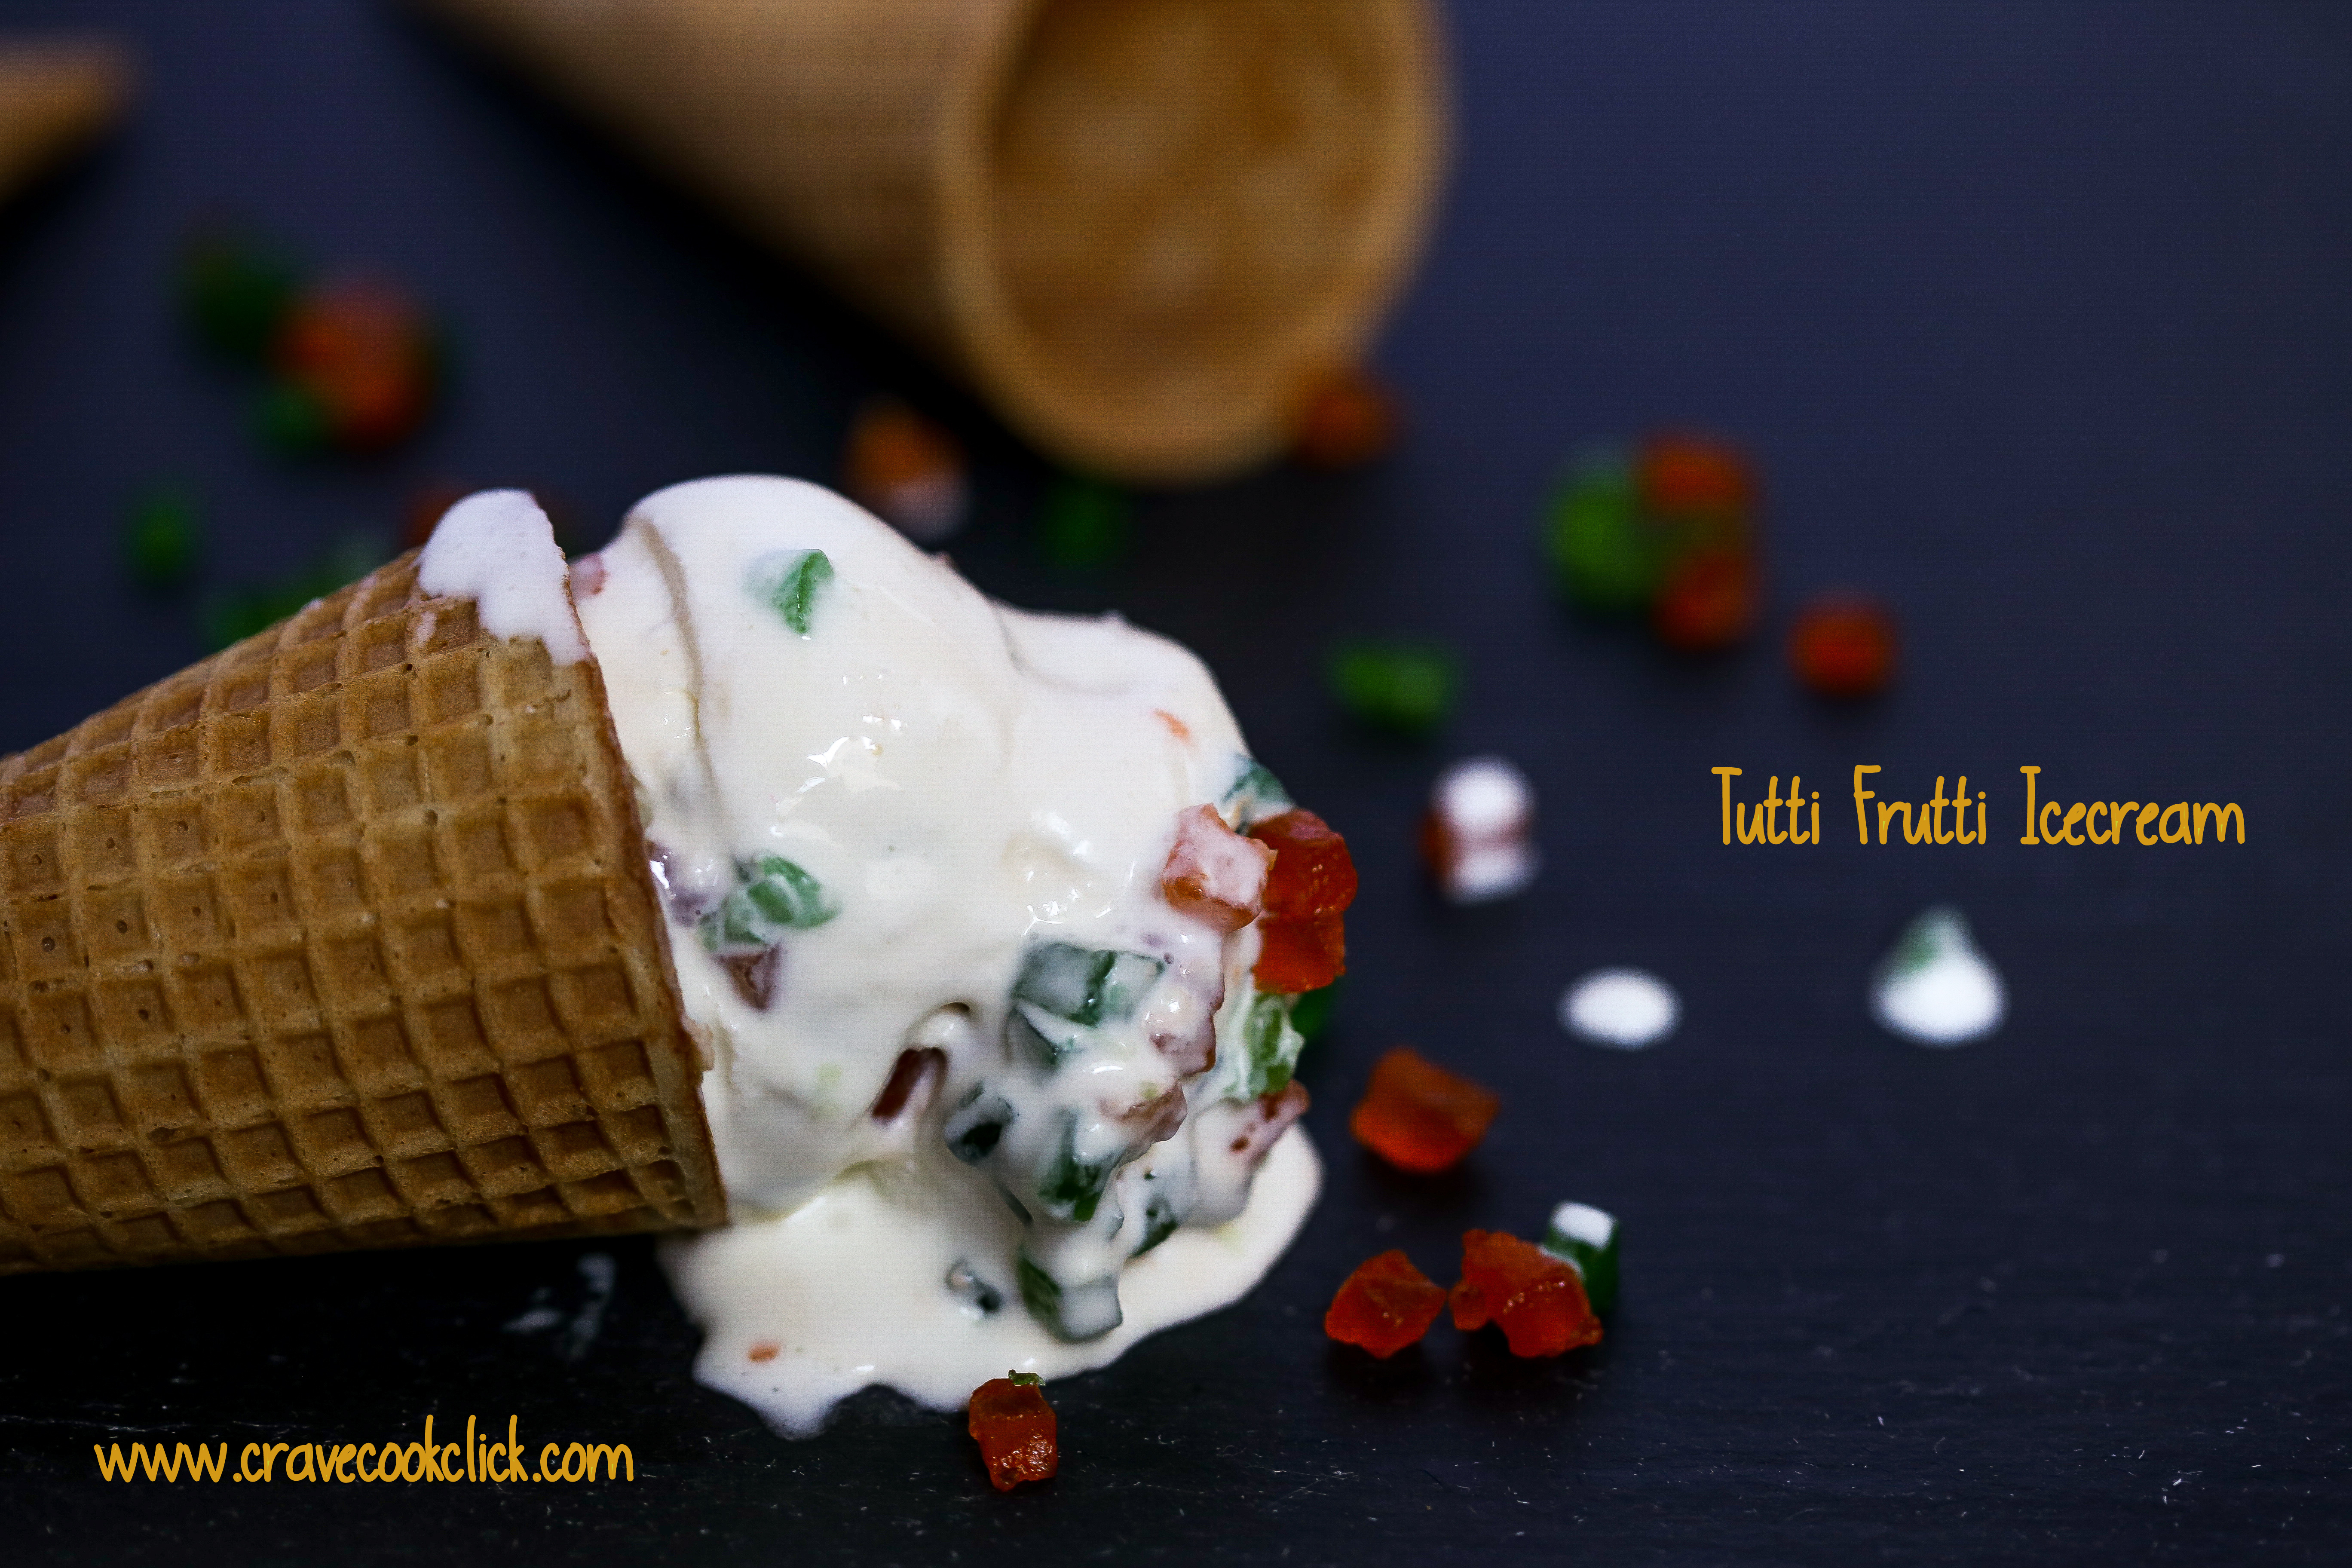 tutti frutti icecream, homemade icecream, how to make tutti frutti, easy icecream recipe